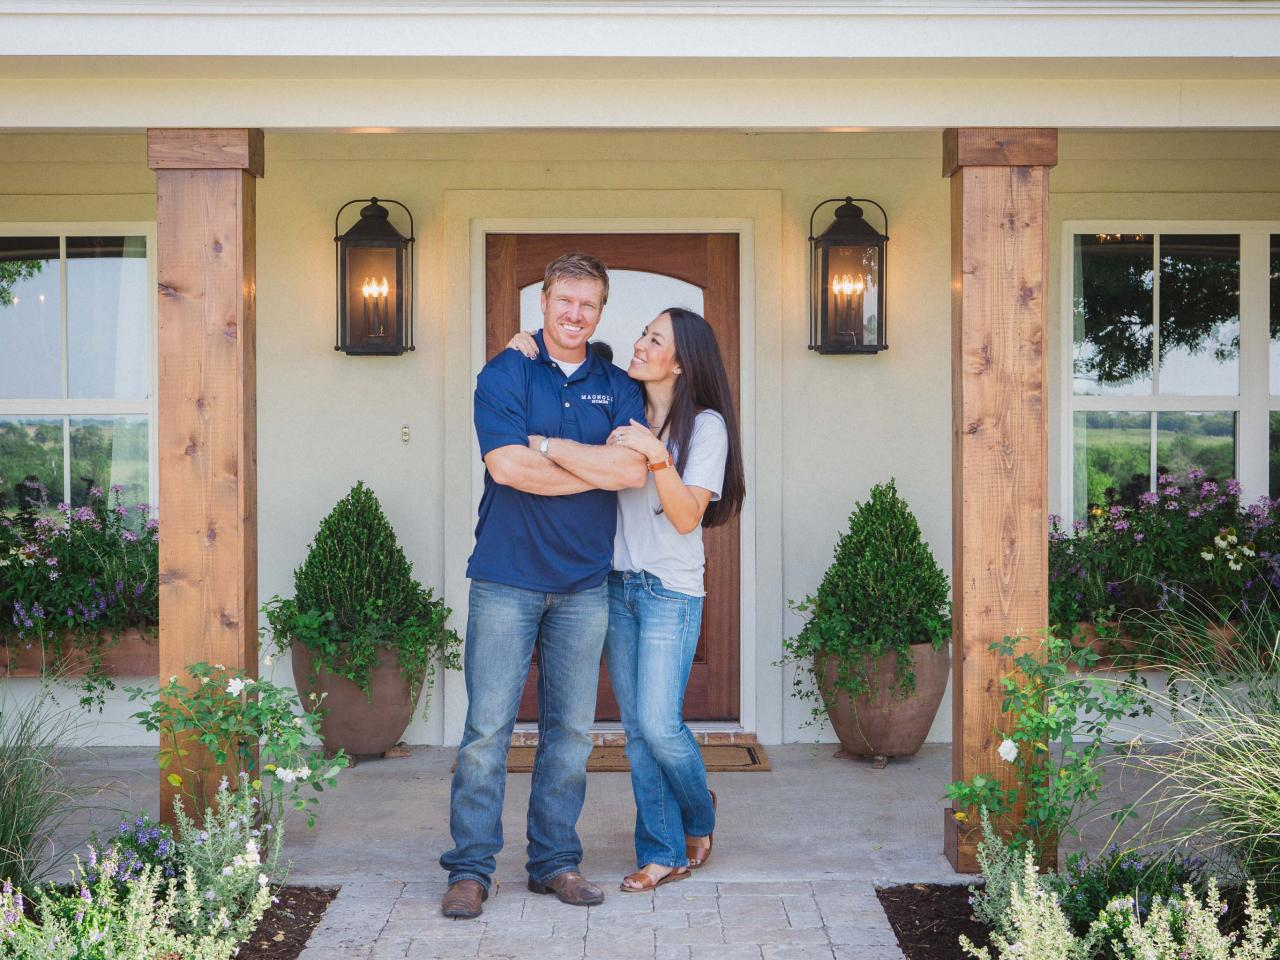 Chip and Joanna Gaines pose in front of a house in Fixer Upper